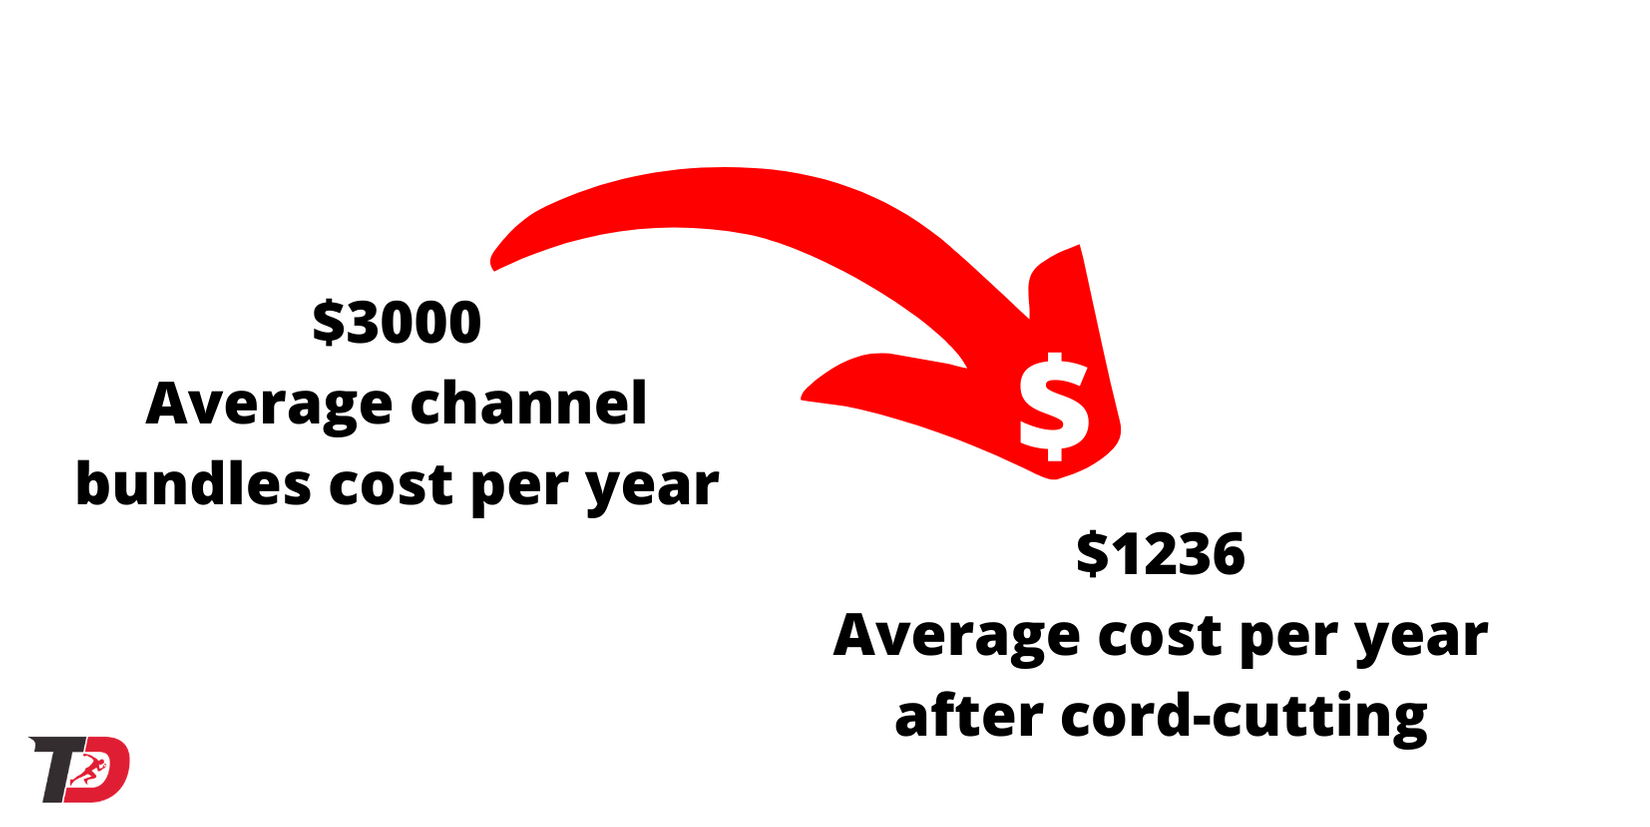 Cost of streaming service bundle versus cable